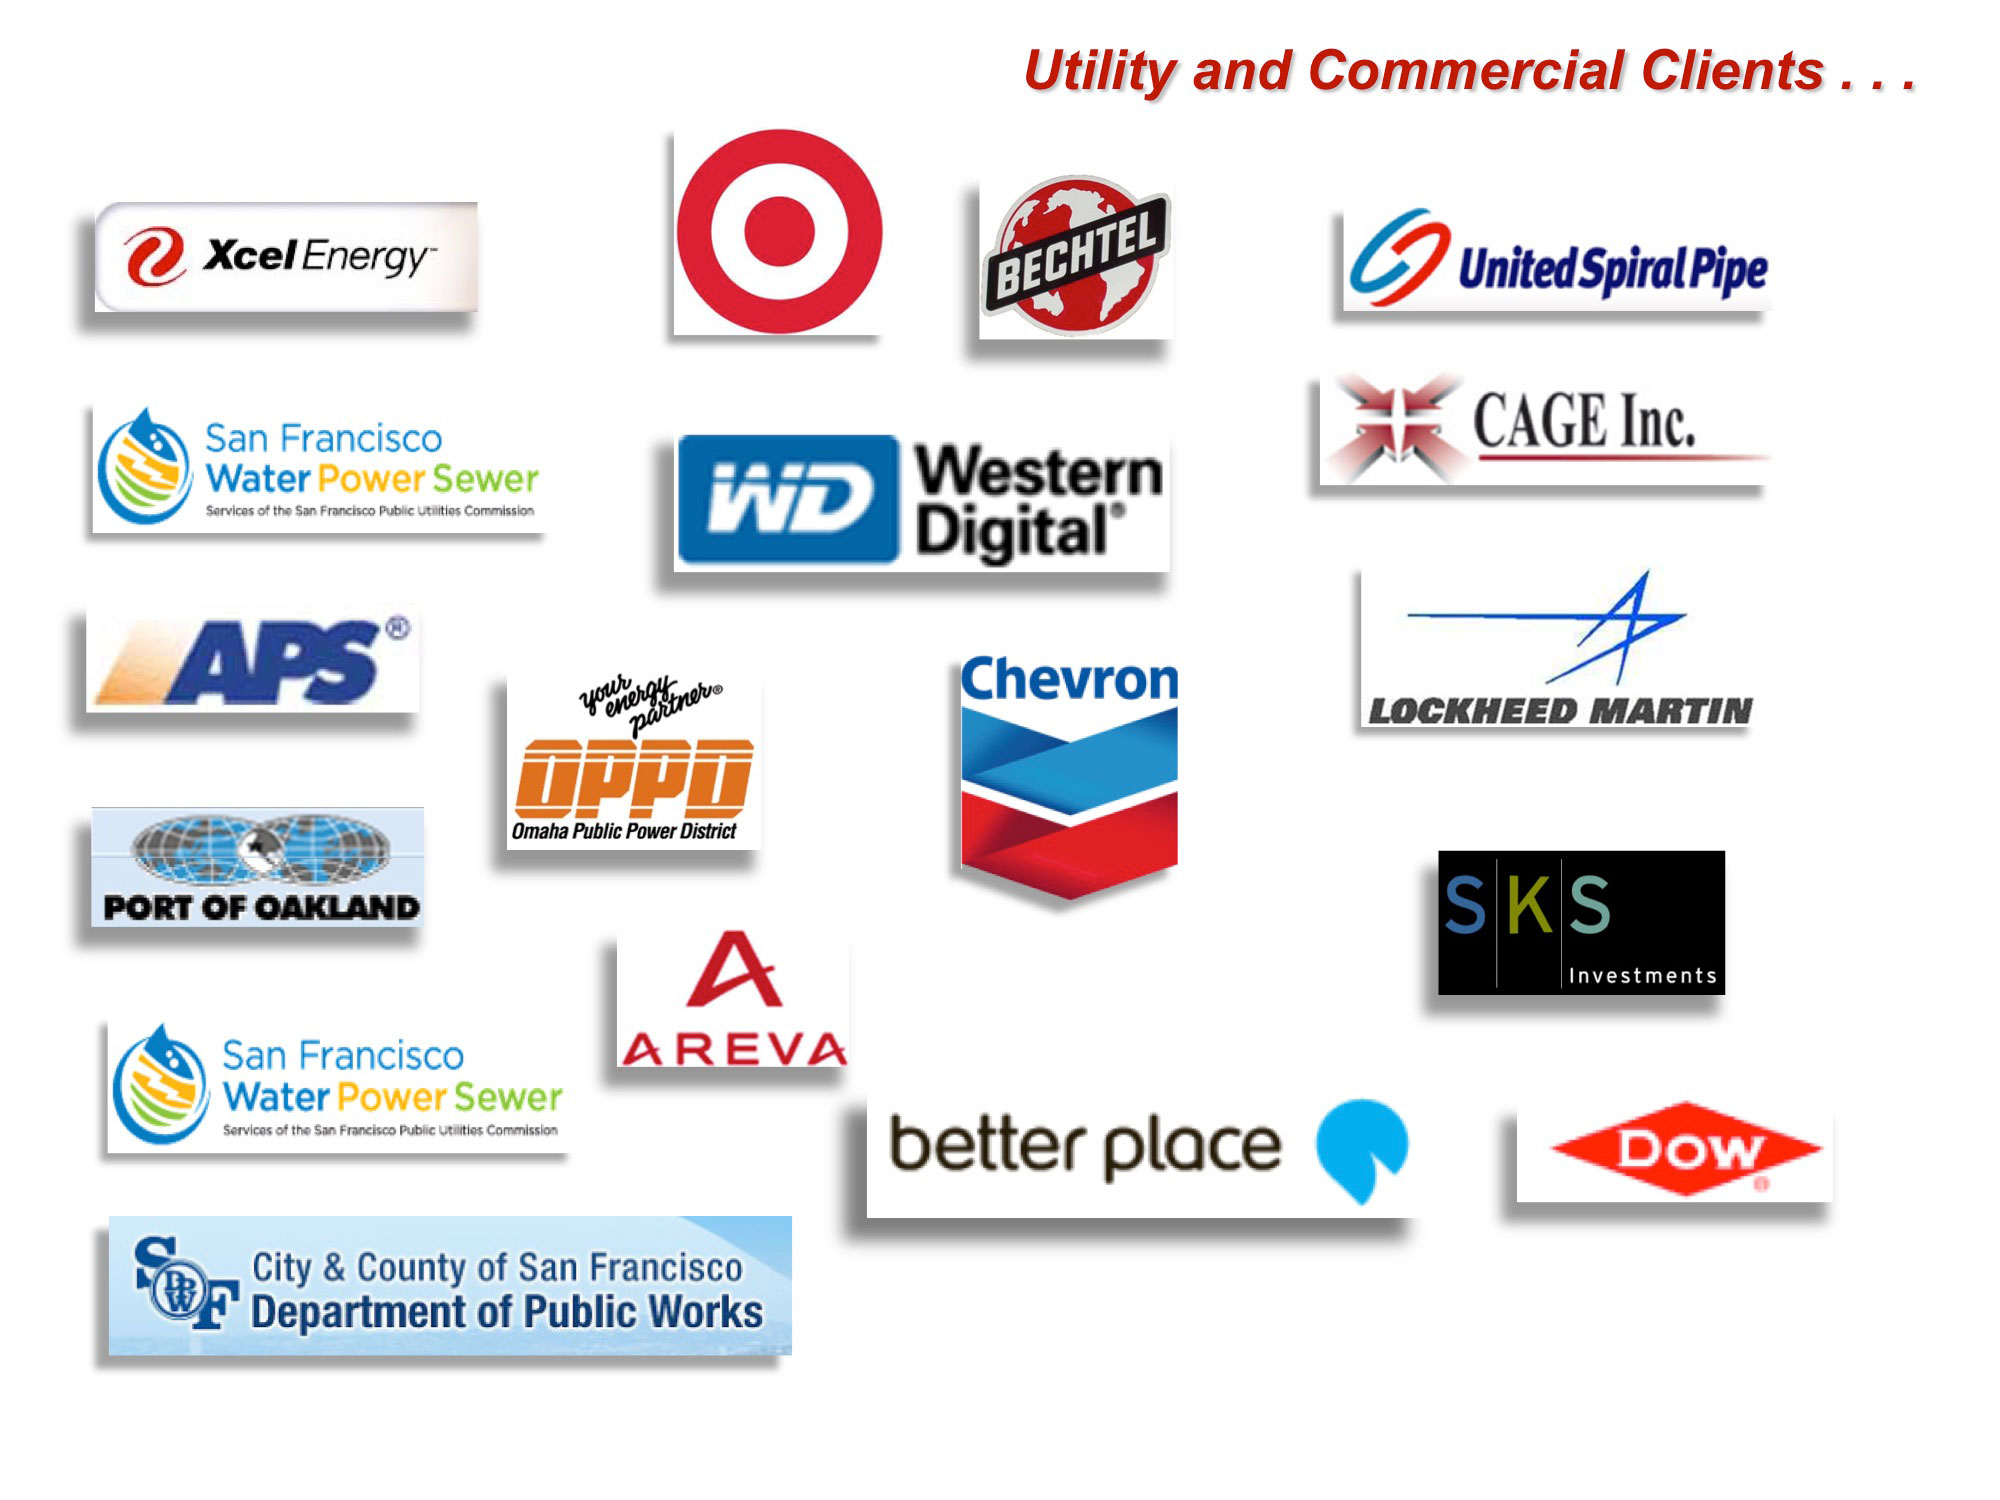 Utility and Commercial Clients